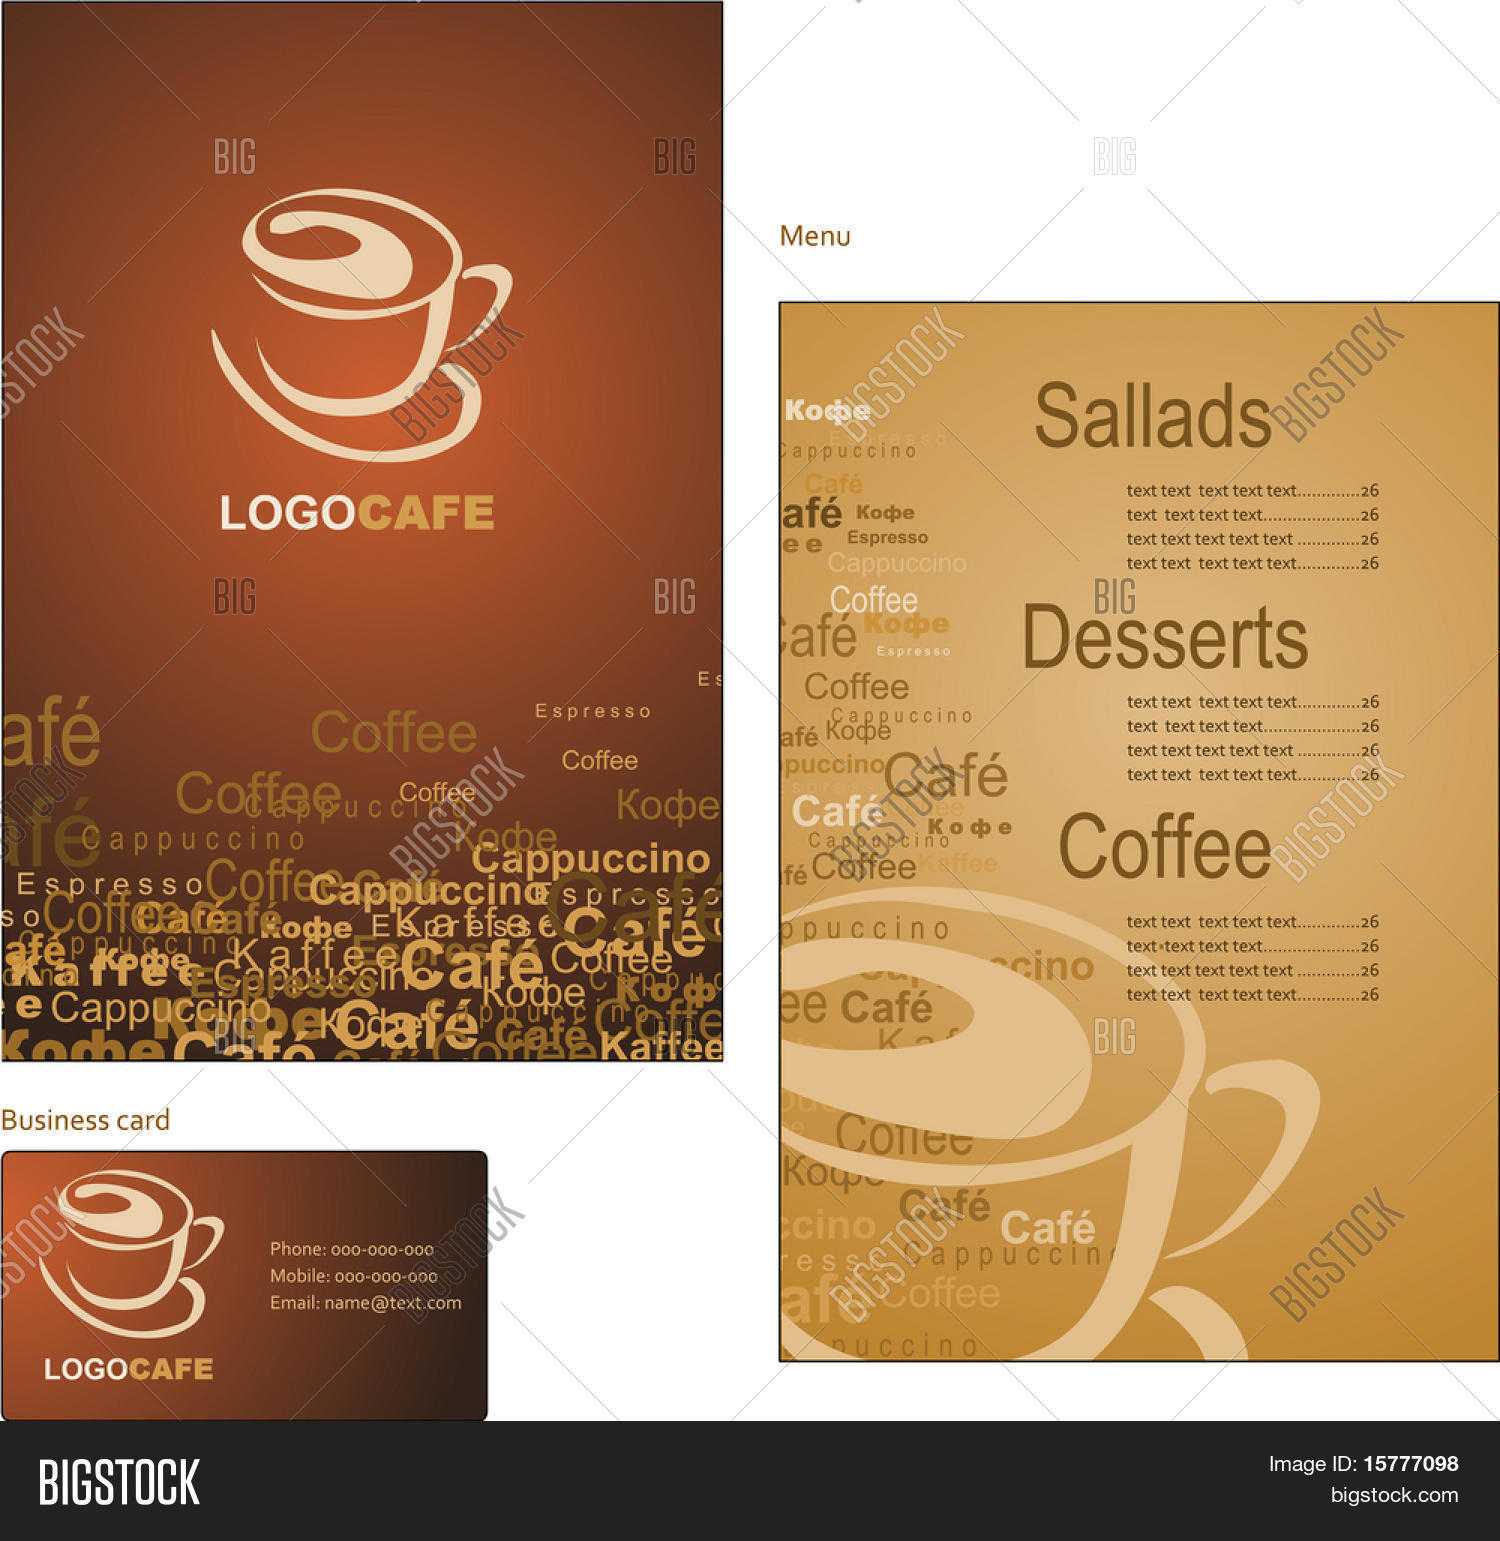 Template designs menu vector photo free trial bigstock template designs of menu and business card for coffee shop and restaurant wajeb Choice Image